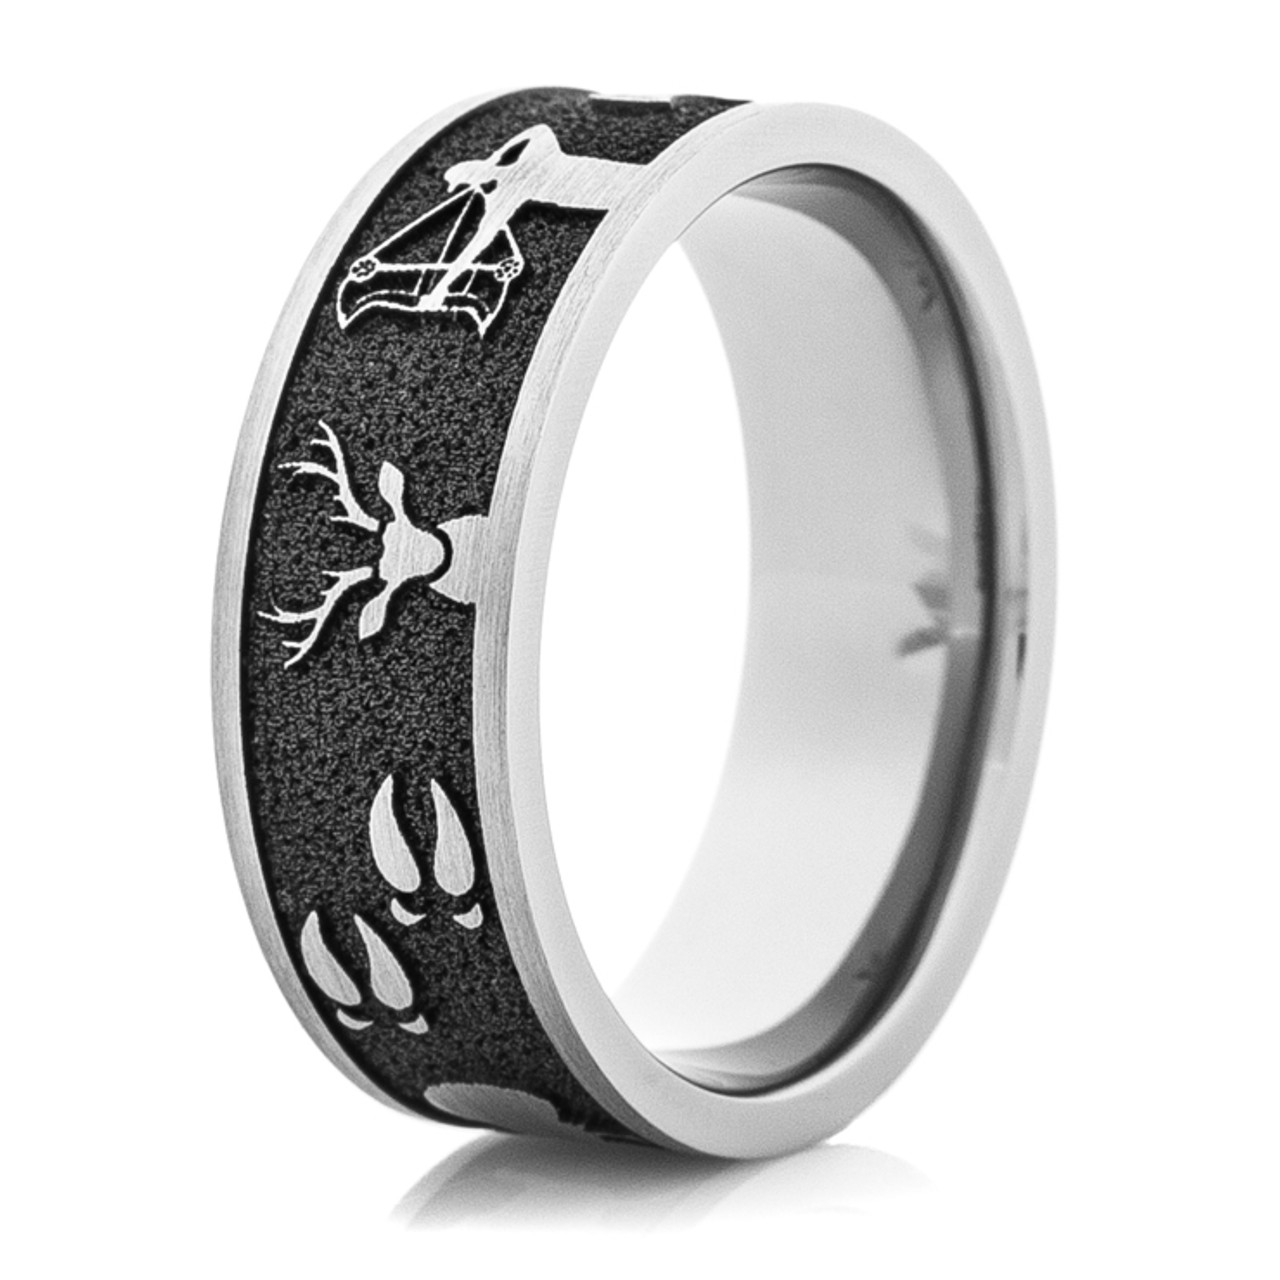 Mens Wedding Rings.Men S Laser Carved Titanium All Around Hunting Wedding Ring